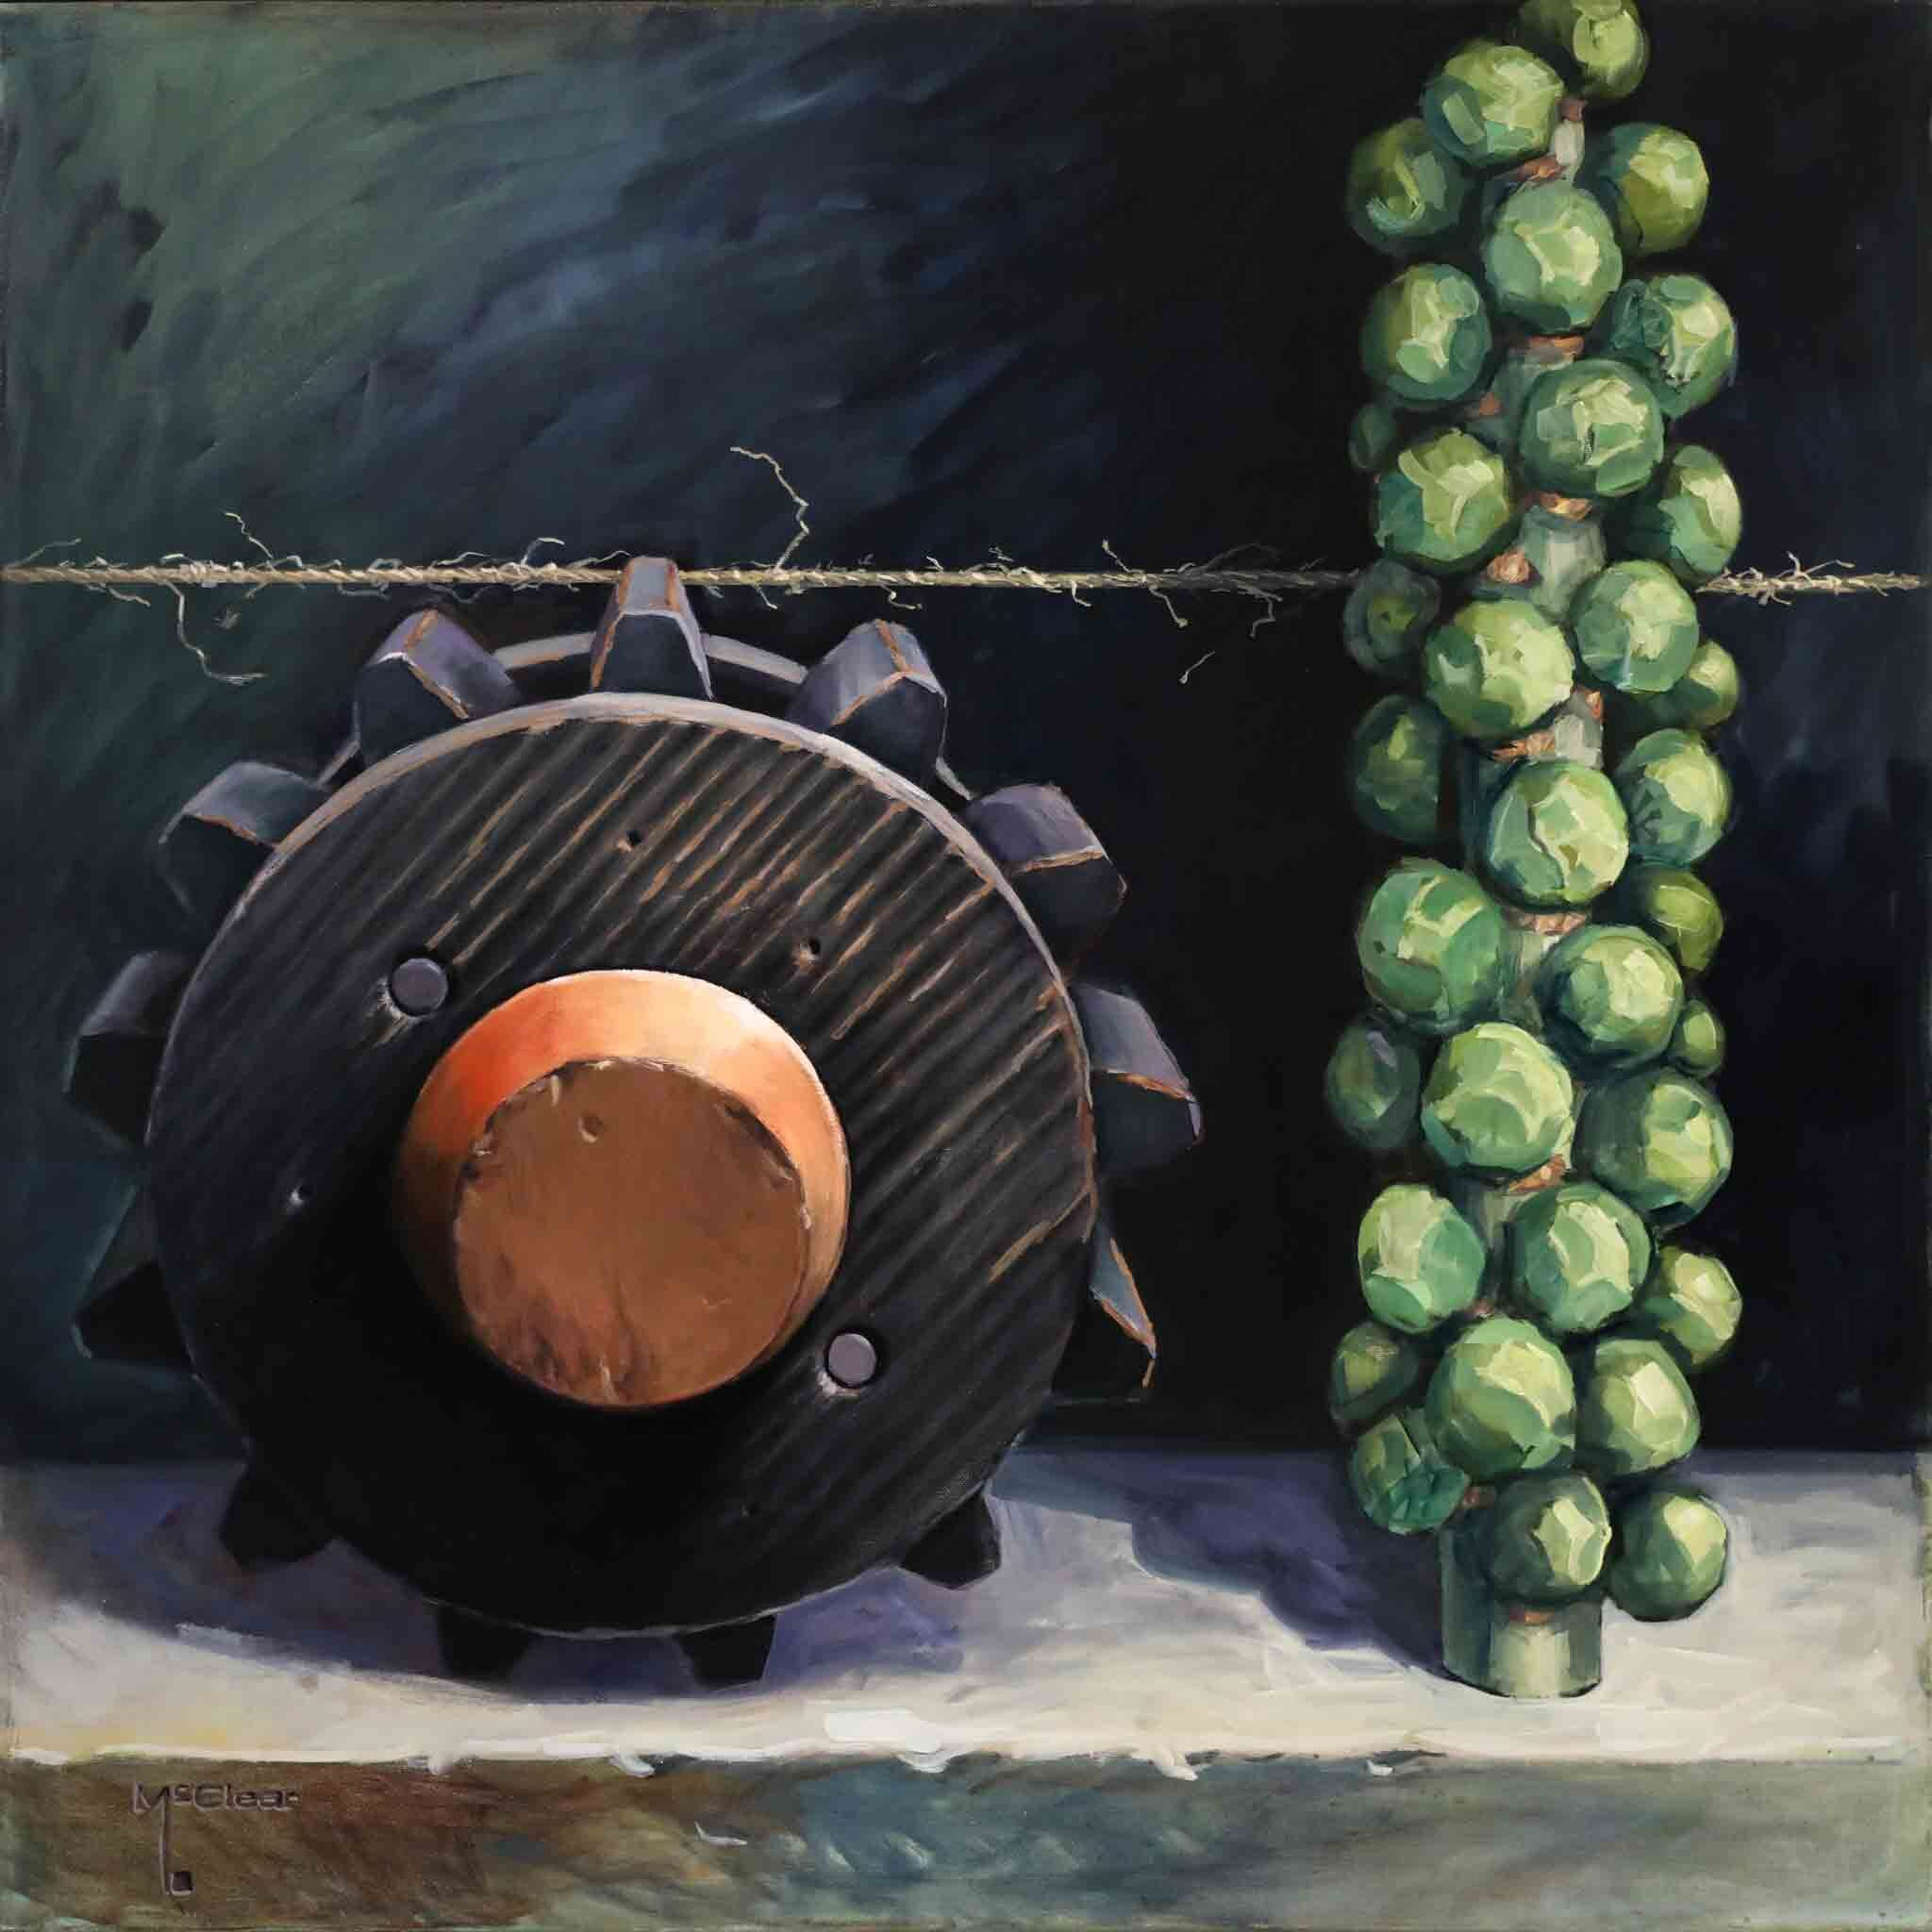 Twine and Sprouts by Brian McClear